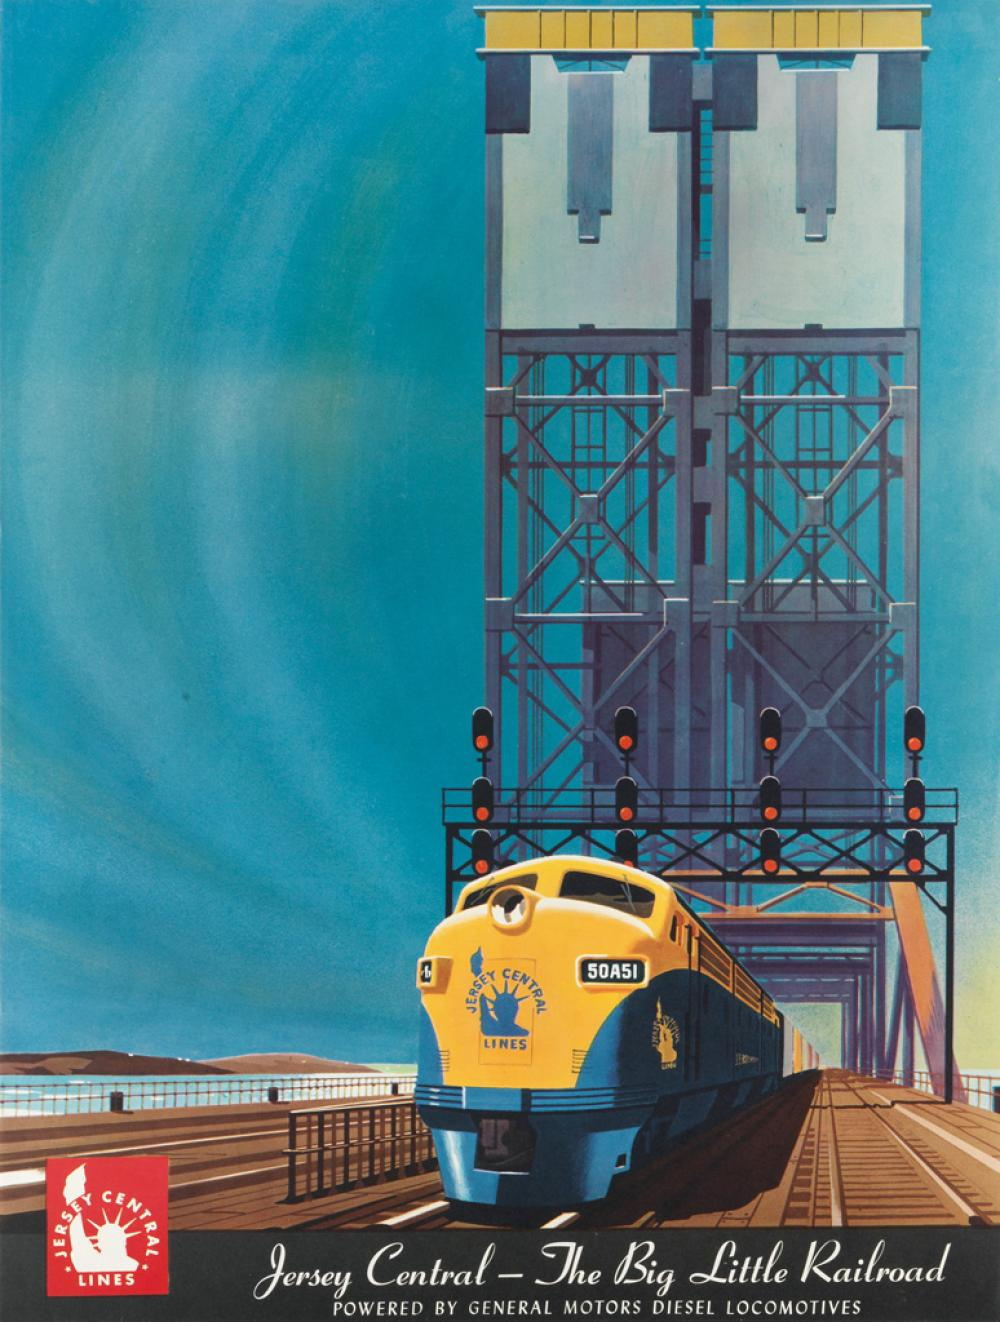 BERN HILL (1911-1977). JERSEY CENTRAL - THE BIG LITTLE RAILROAD. Circa 1950s. 24x18 inches, 61x45 cm.